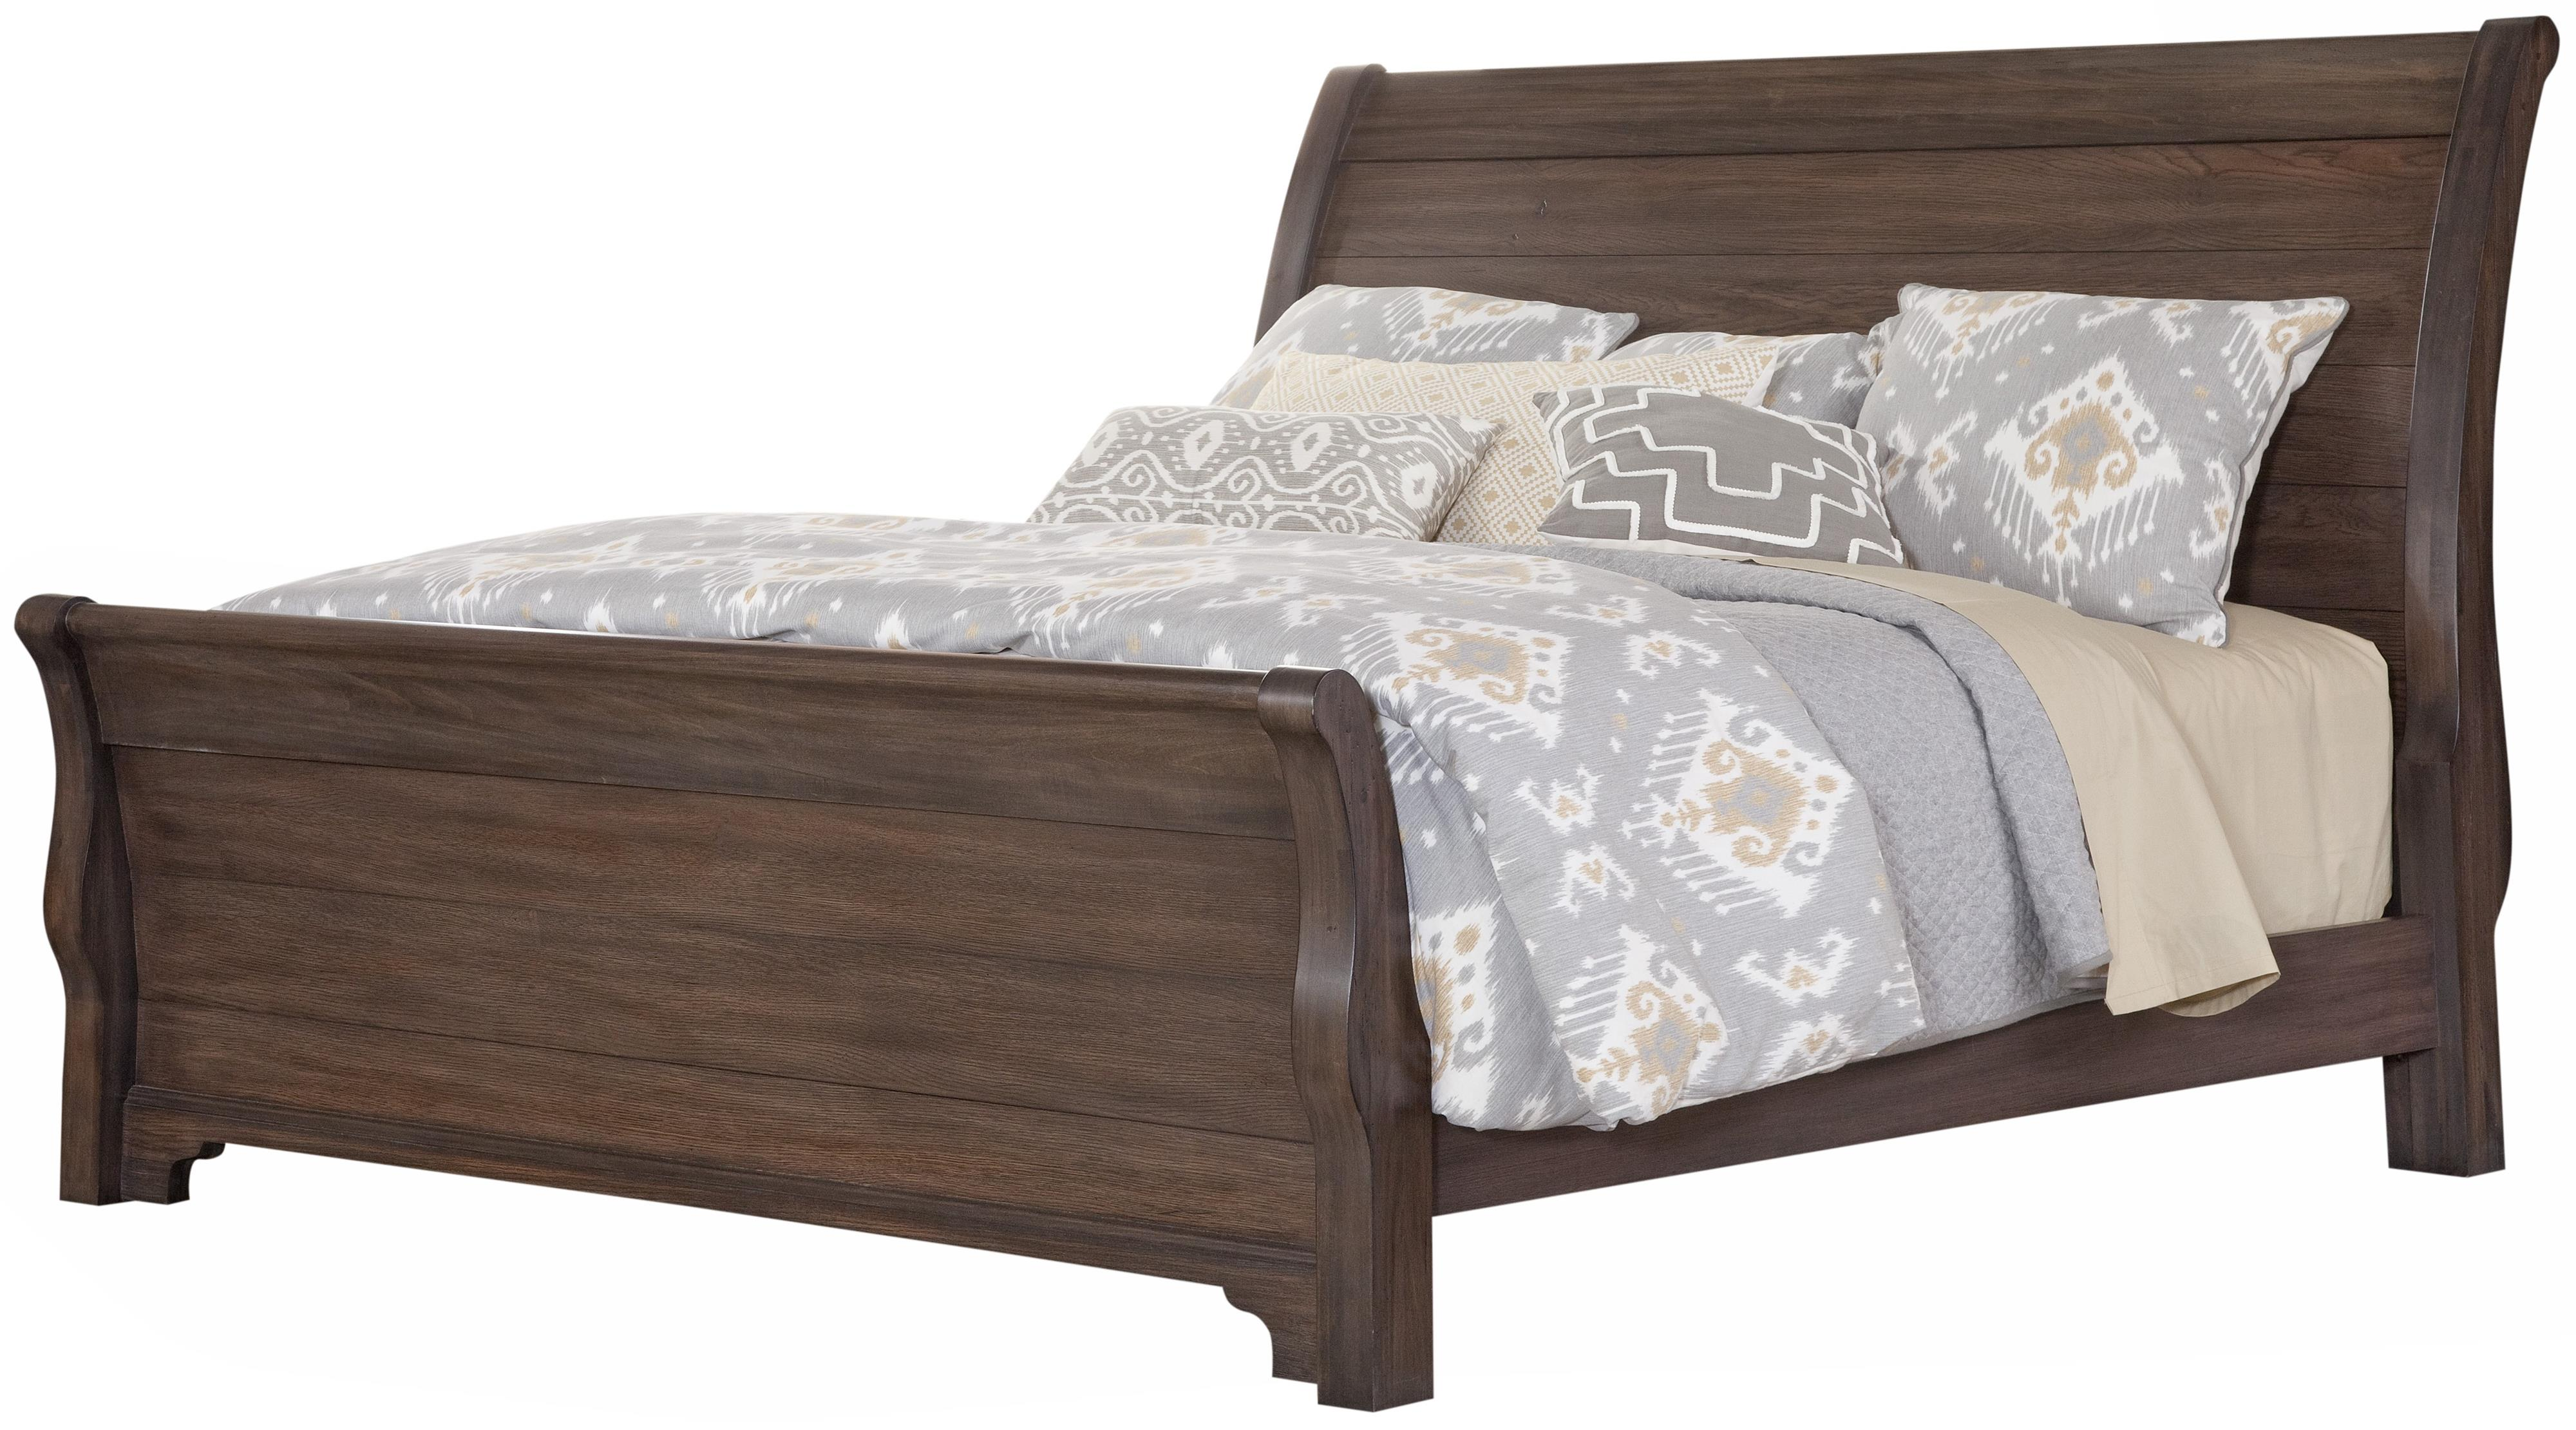 Sleigh Bed Headboard Whiskey Barrel Distressed Queen Sleigh Bed With Solid Wood Planks By Vaughan Bassett At Becker Furniture World